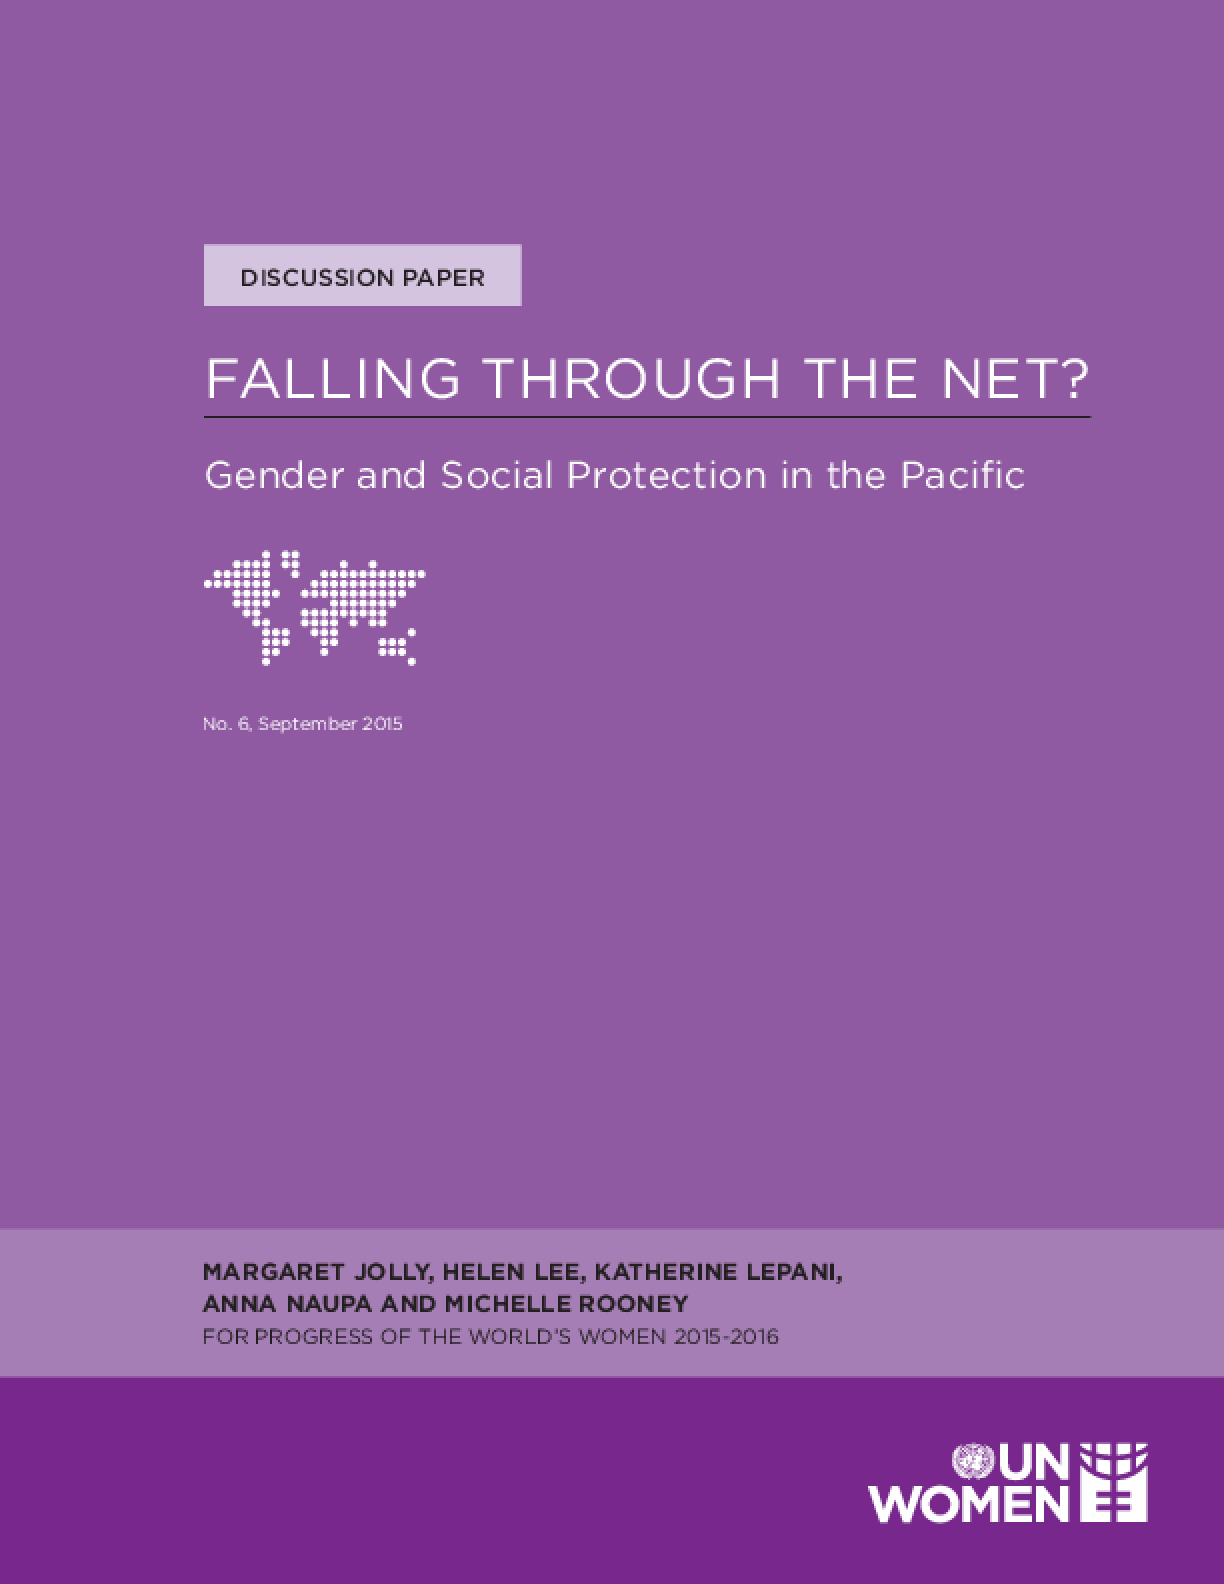 Falling Through the Net? Gender and Social Protection in the Pacific